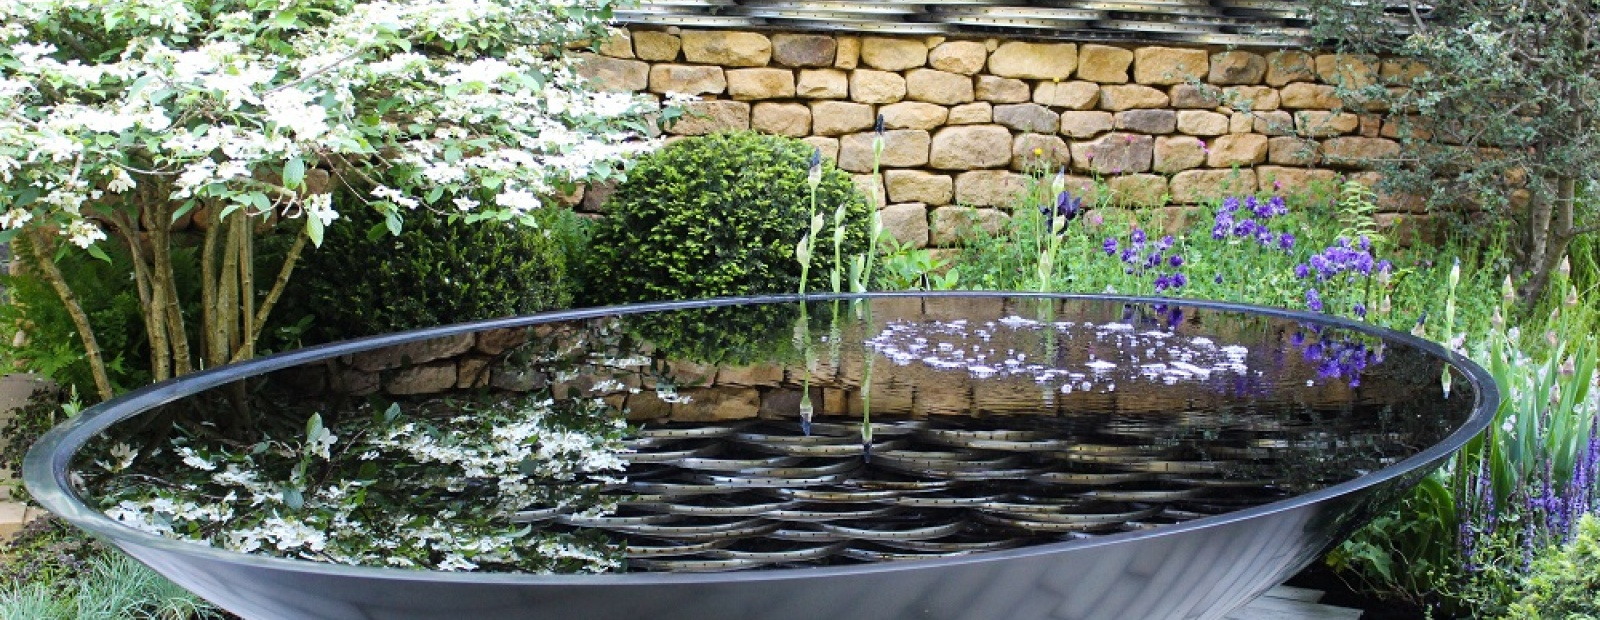 12 charming diy garden pond ideas style motivation for Diy patio pond